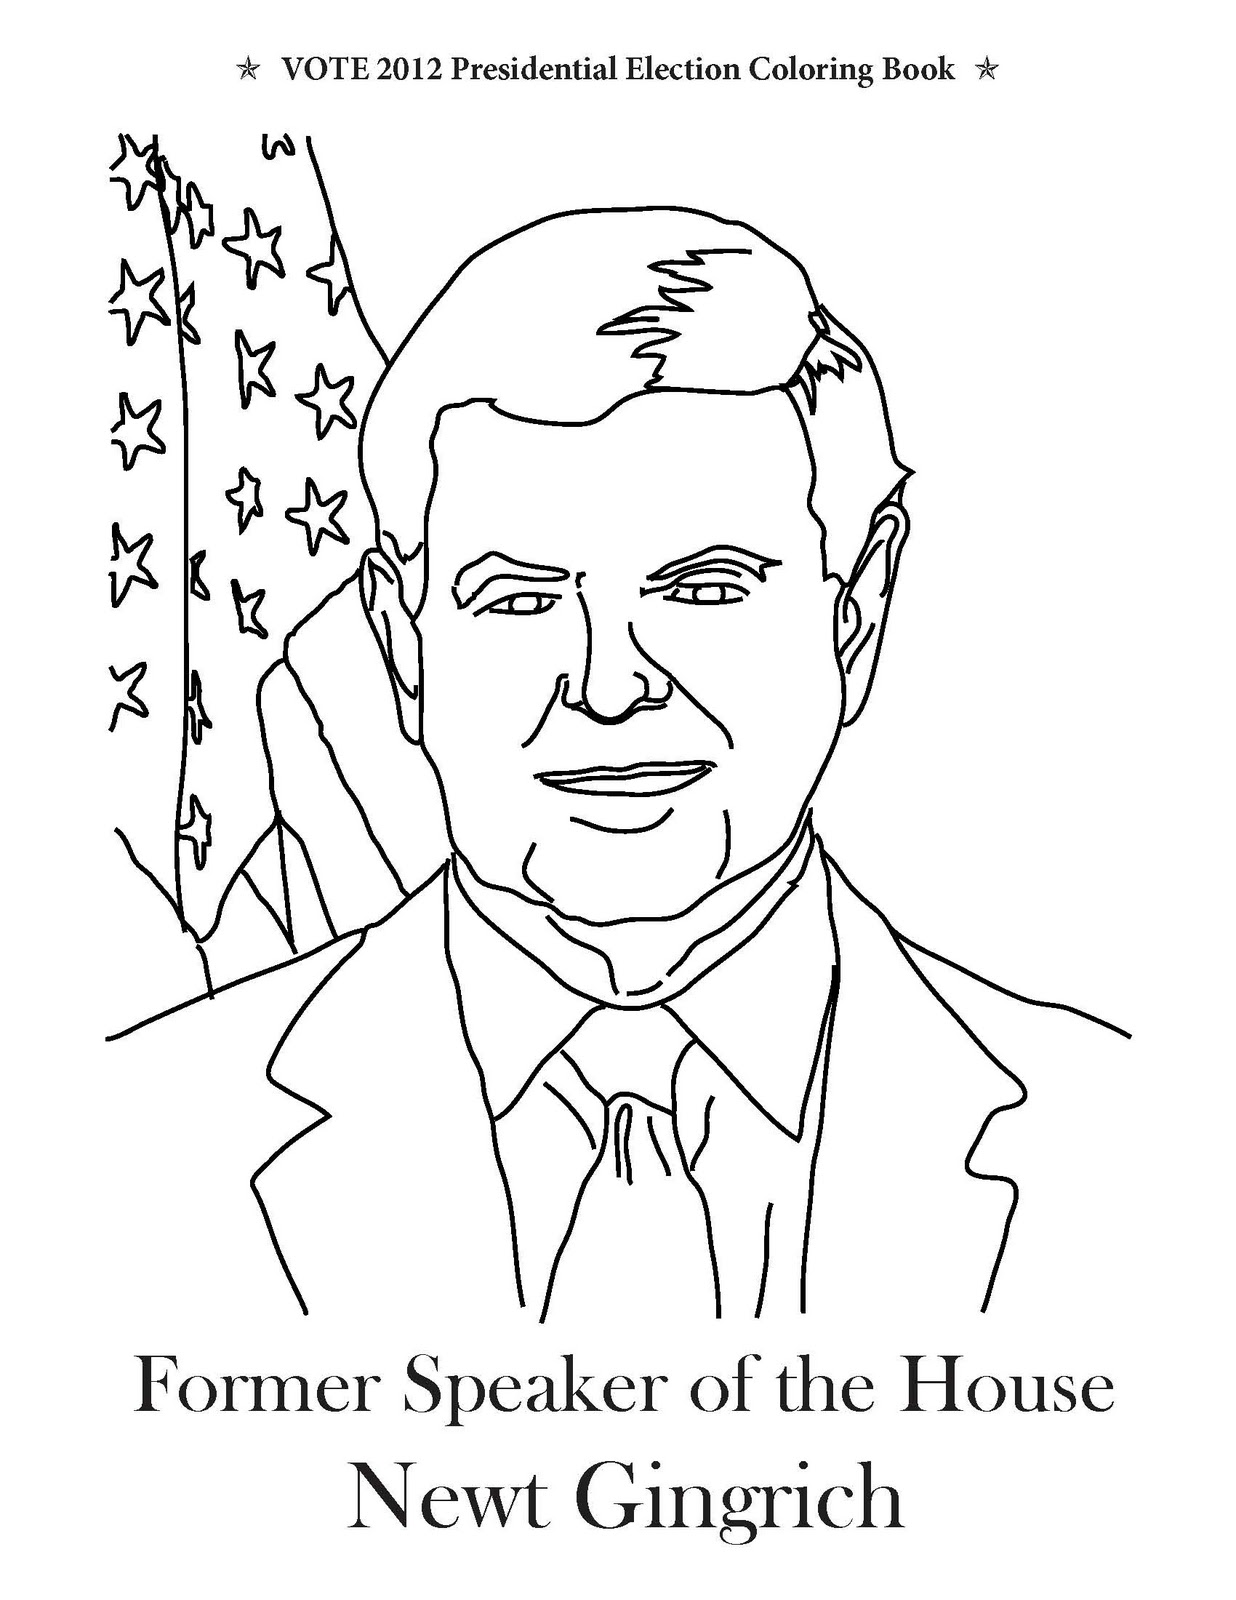 Vote Presidential Election Coloring Book Newt